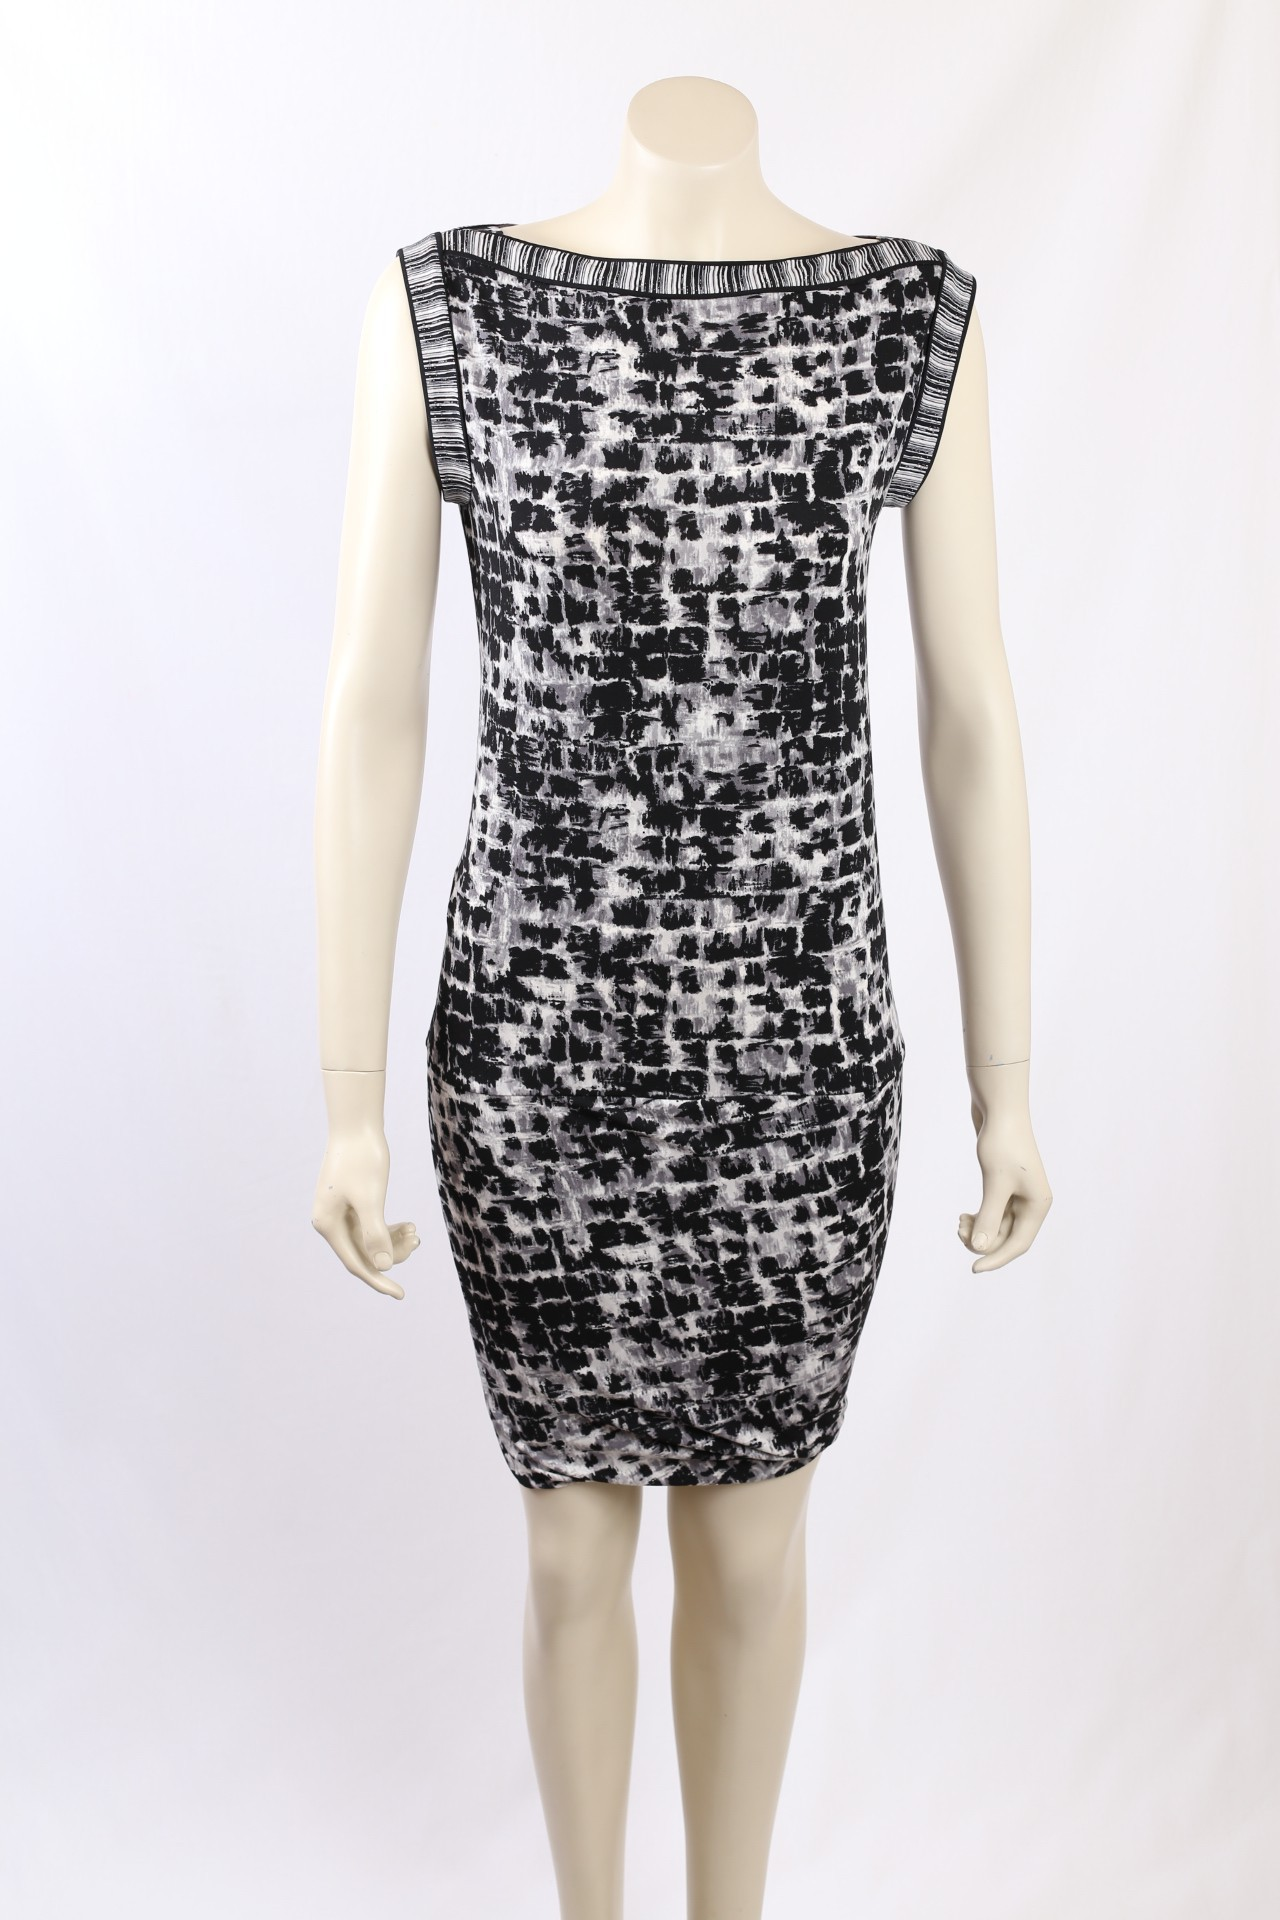 Bcbg Max Azria Printed Cocktail Dress Size Xs